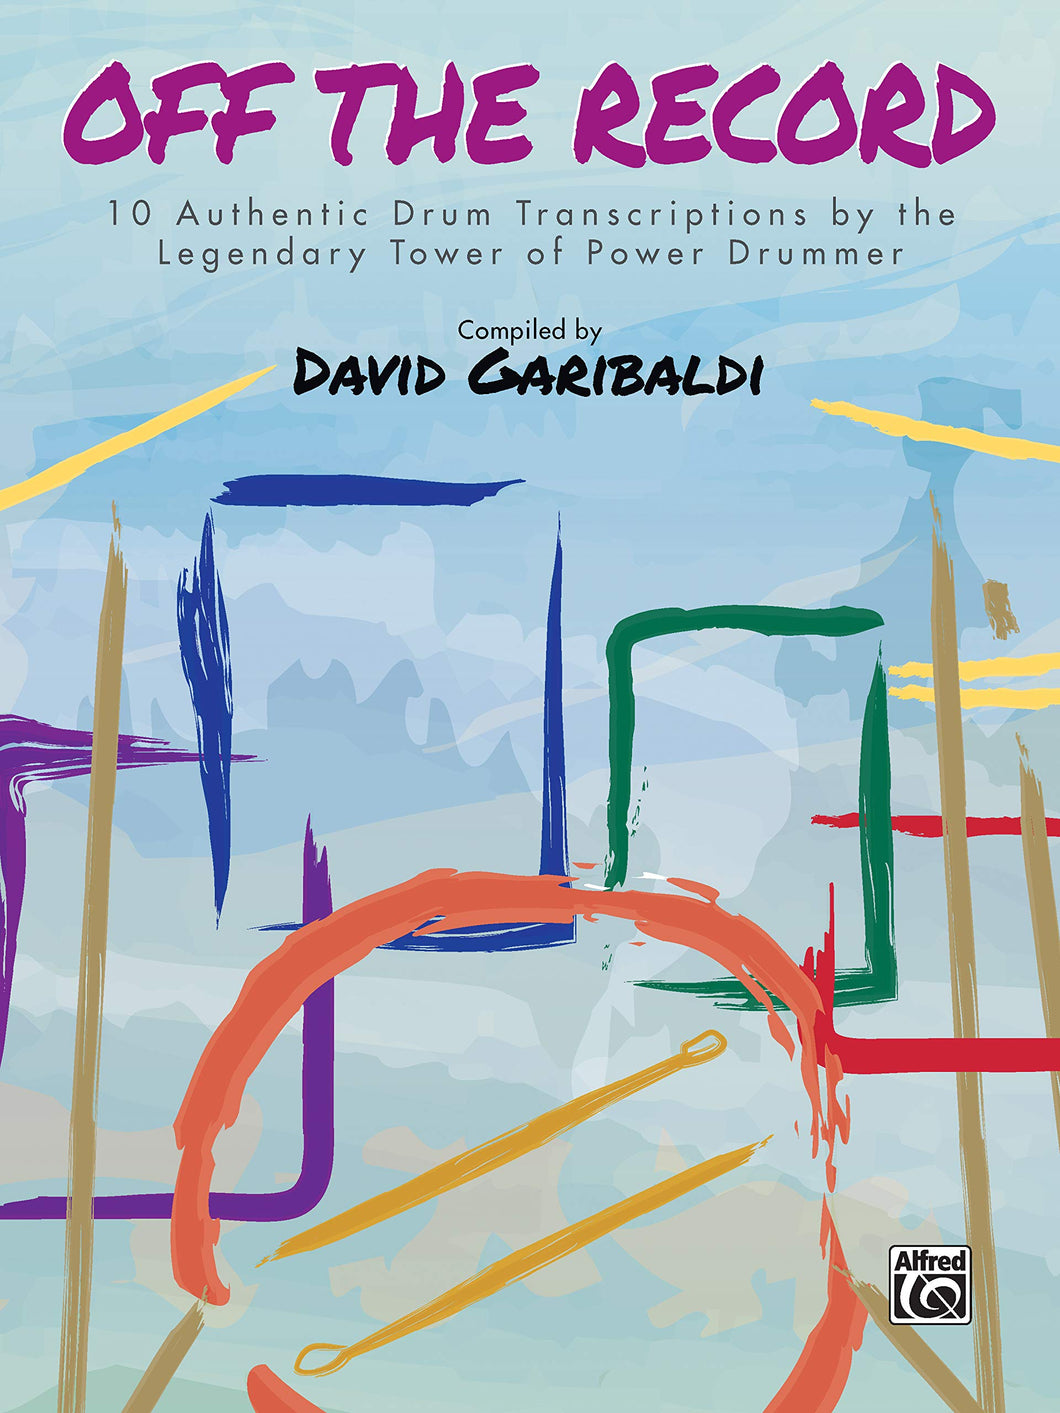 Development of the Two Sound Levels - David Garibaldi - Collection of Drum Transcriptions / Drum Sheet Music - Alfred Music DGOTR